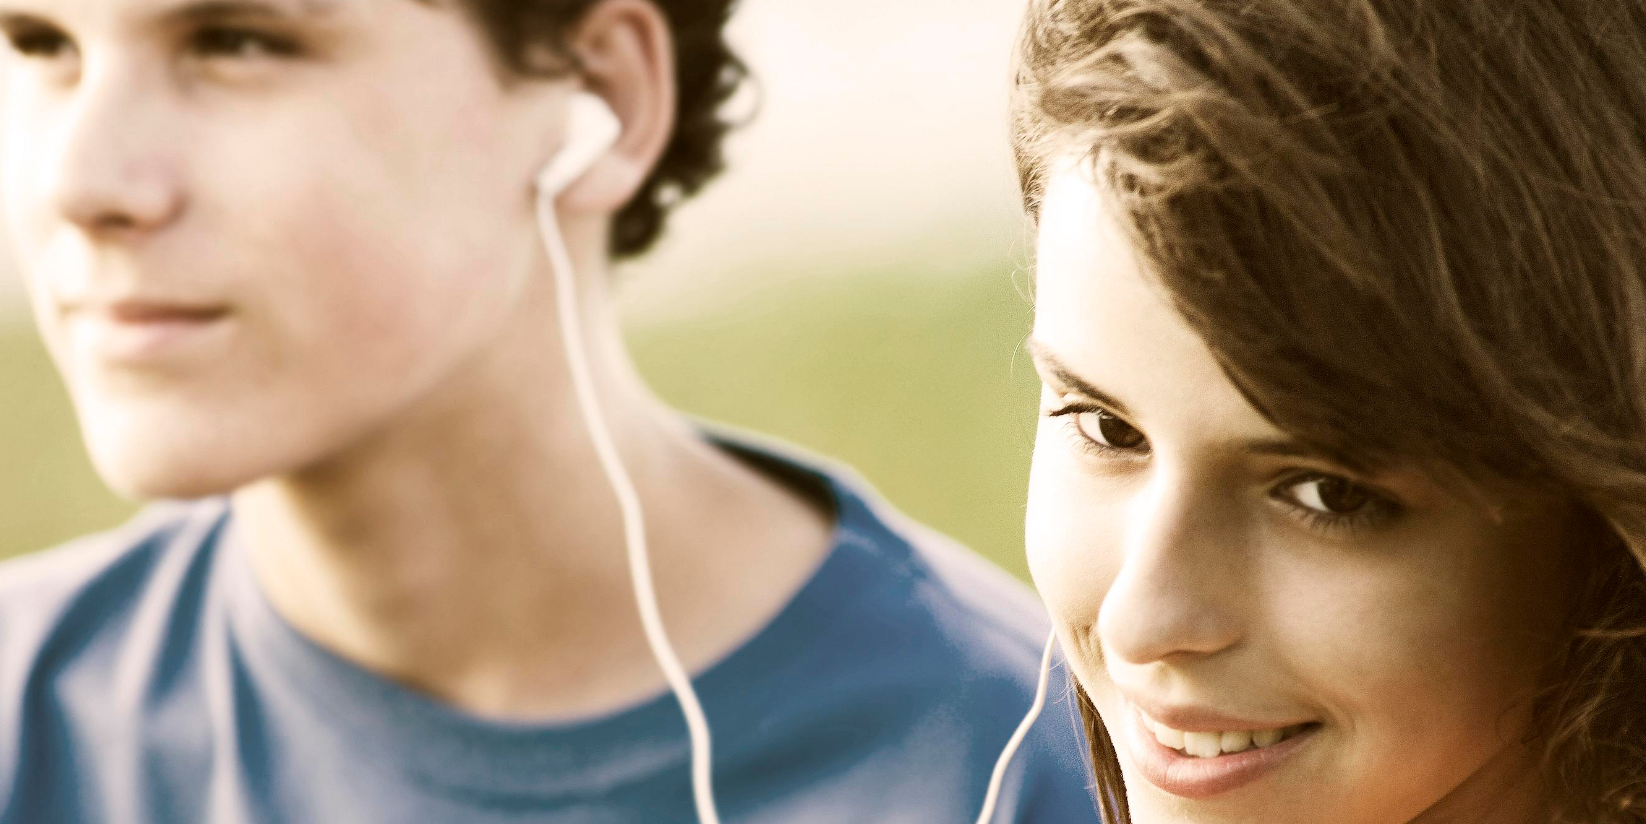 A couple listens to music together.